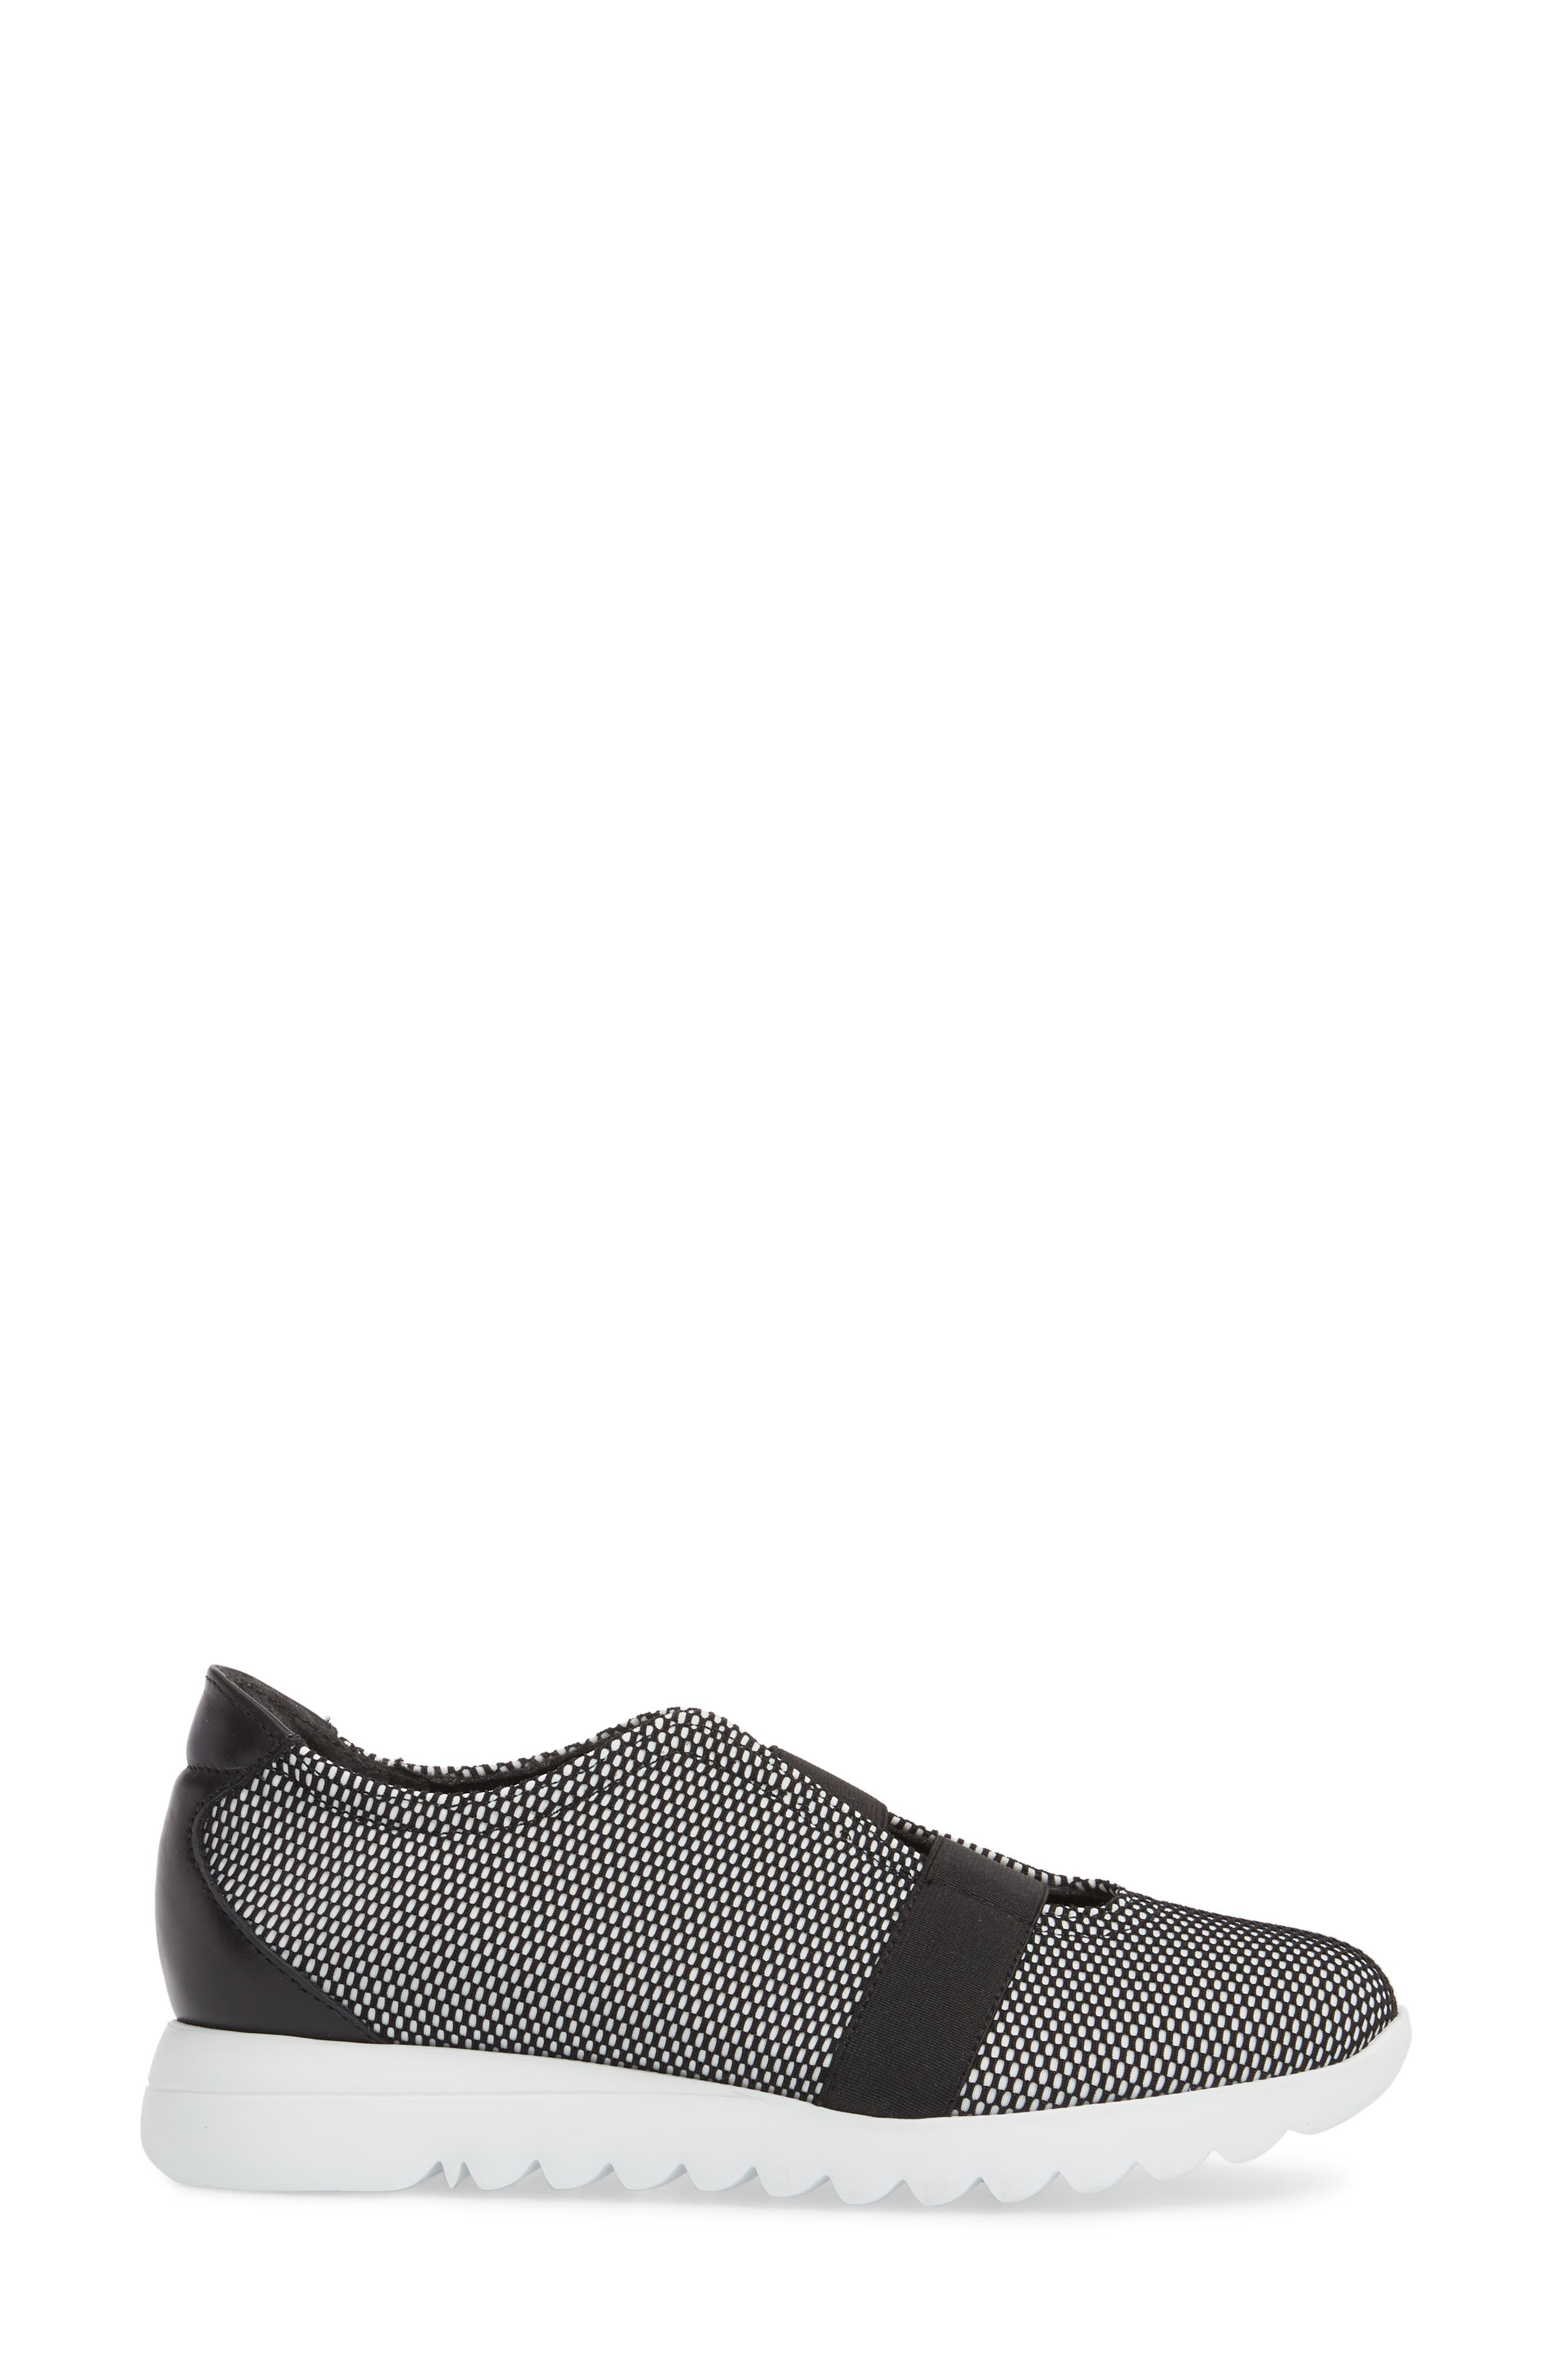 Alta Slip-On Sneaker,                             Alternate thumbnail 3, color,                             BLACK/ WHITE FABRIC